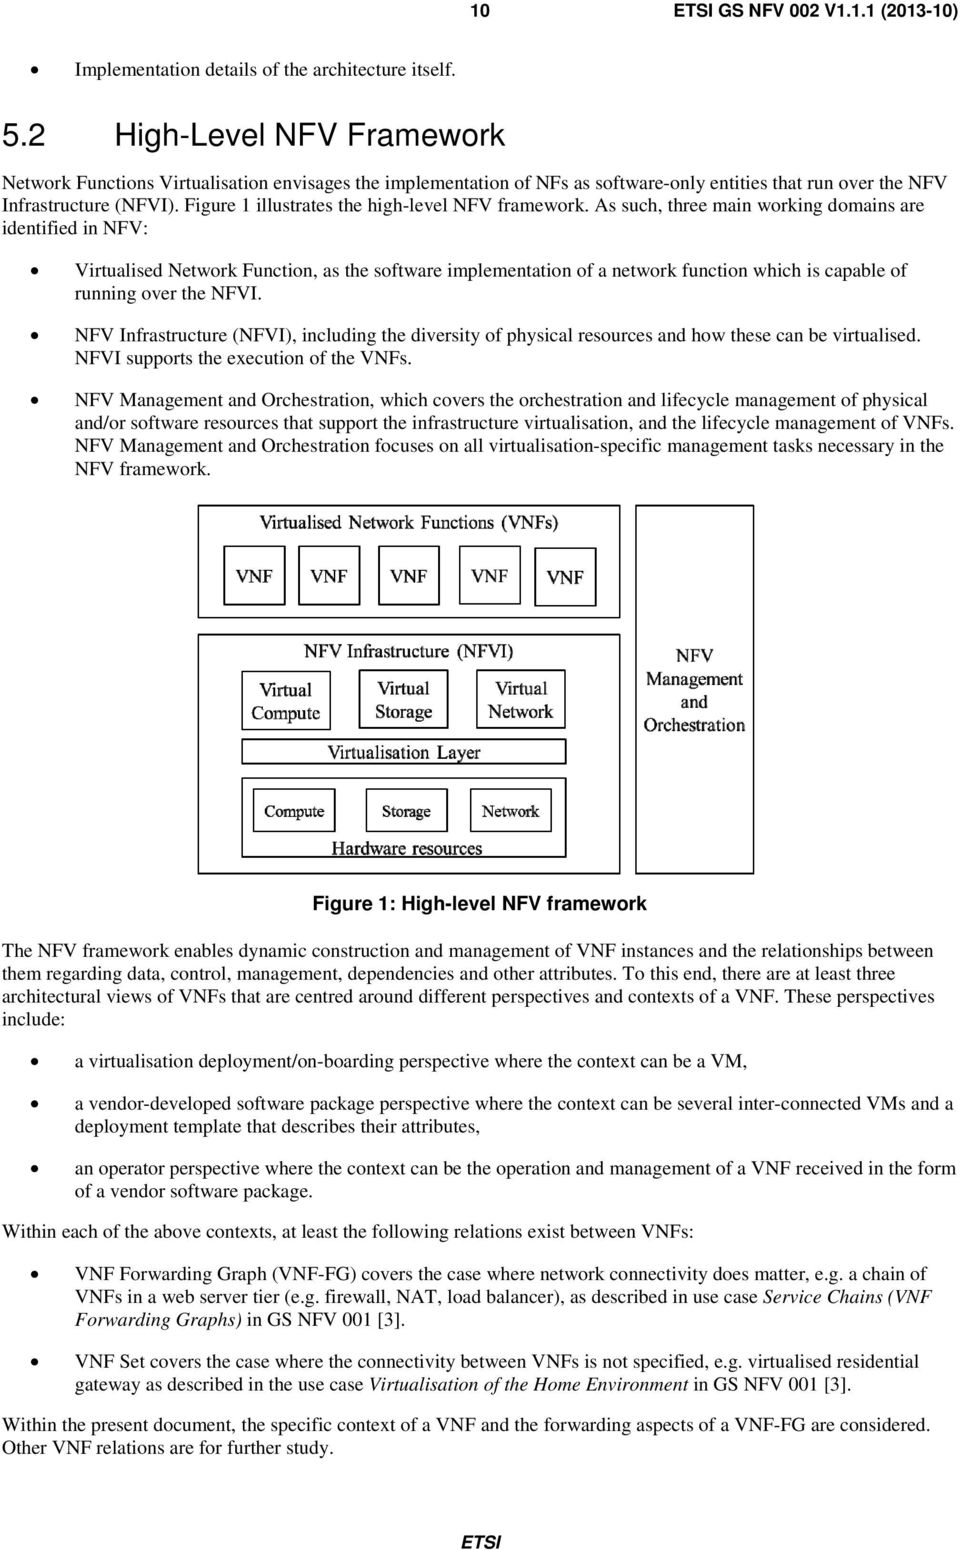 Figure 1 illustrates the high-level NFV framework.